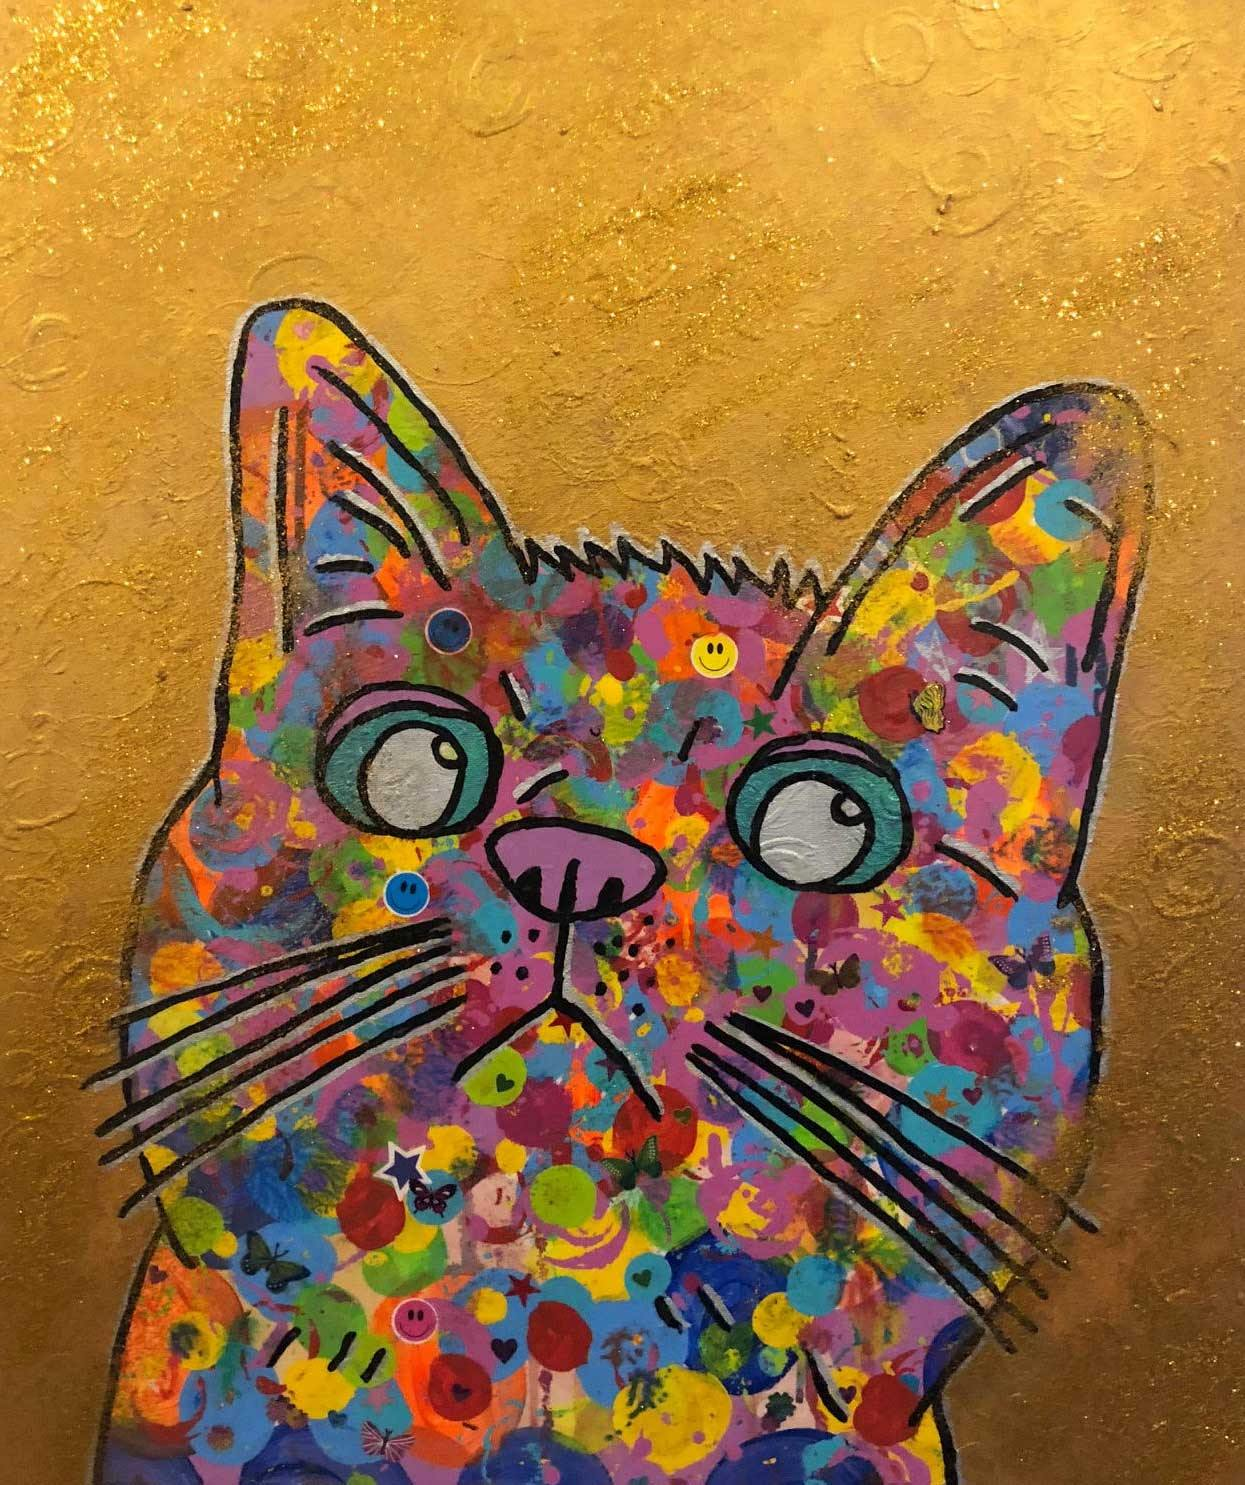 Cosmic moggy by Barrie J Davies 2018, mixed media on canvas, unframed, 50cm x 60cm. Barrie J Davies is an Artist - Pop Art and Street art inspired Artist based in Brighton England UK - Pop Art Paintings, Street Art Prints & Editions available